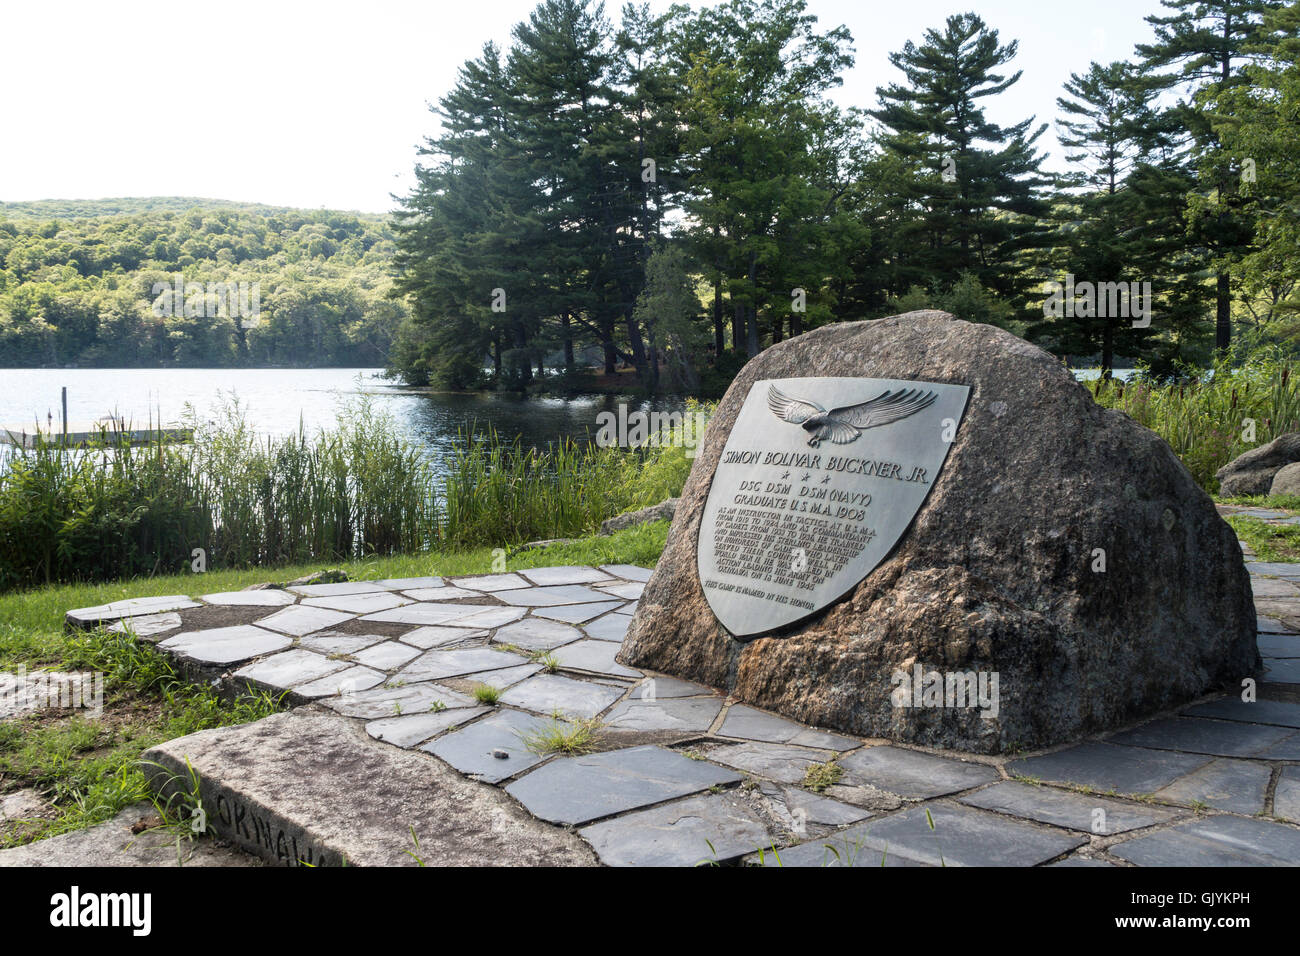 Camp Buckner at the United States Military Academy, West Point, NY, USA - Stock Image